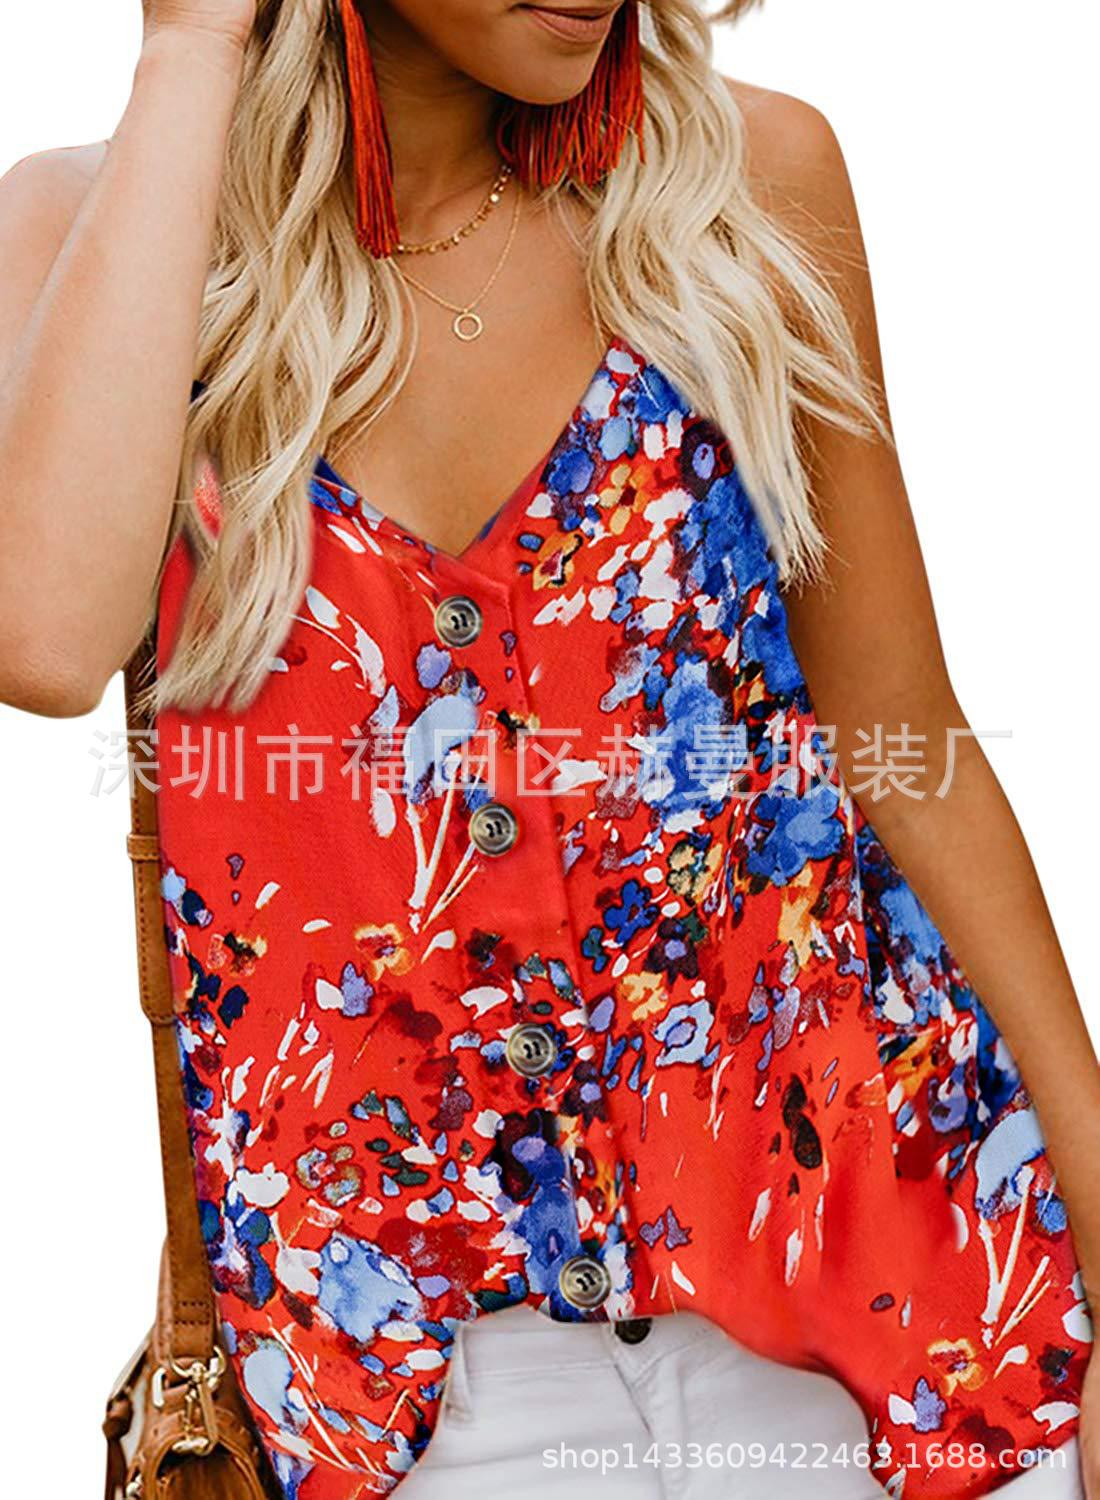 Women Button Tank Top Spaghetti Strap V Neck Summer Causal Loose Sleeveless Vest Tops floral red